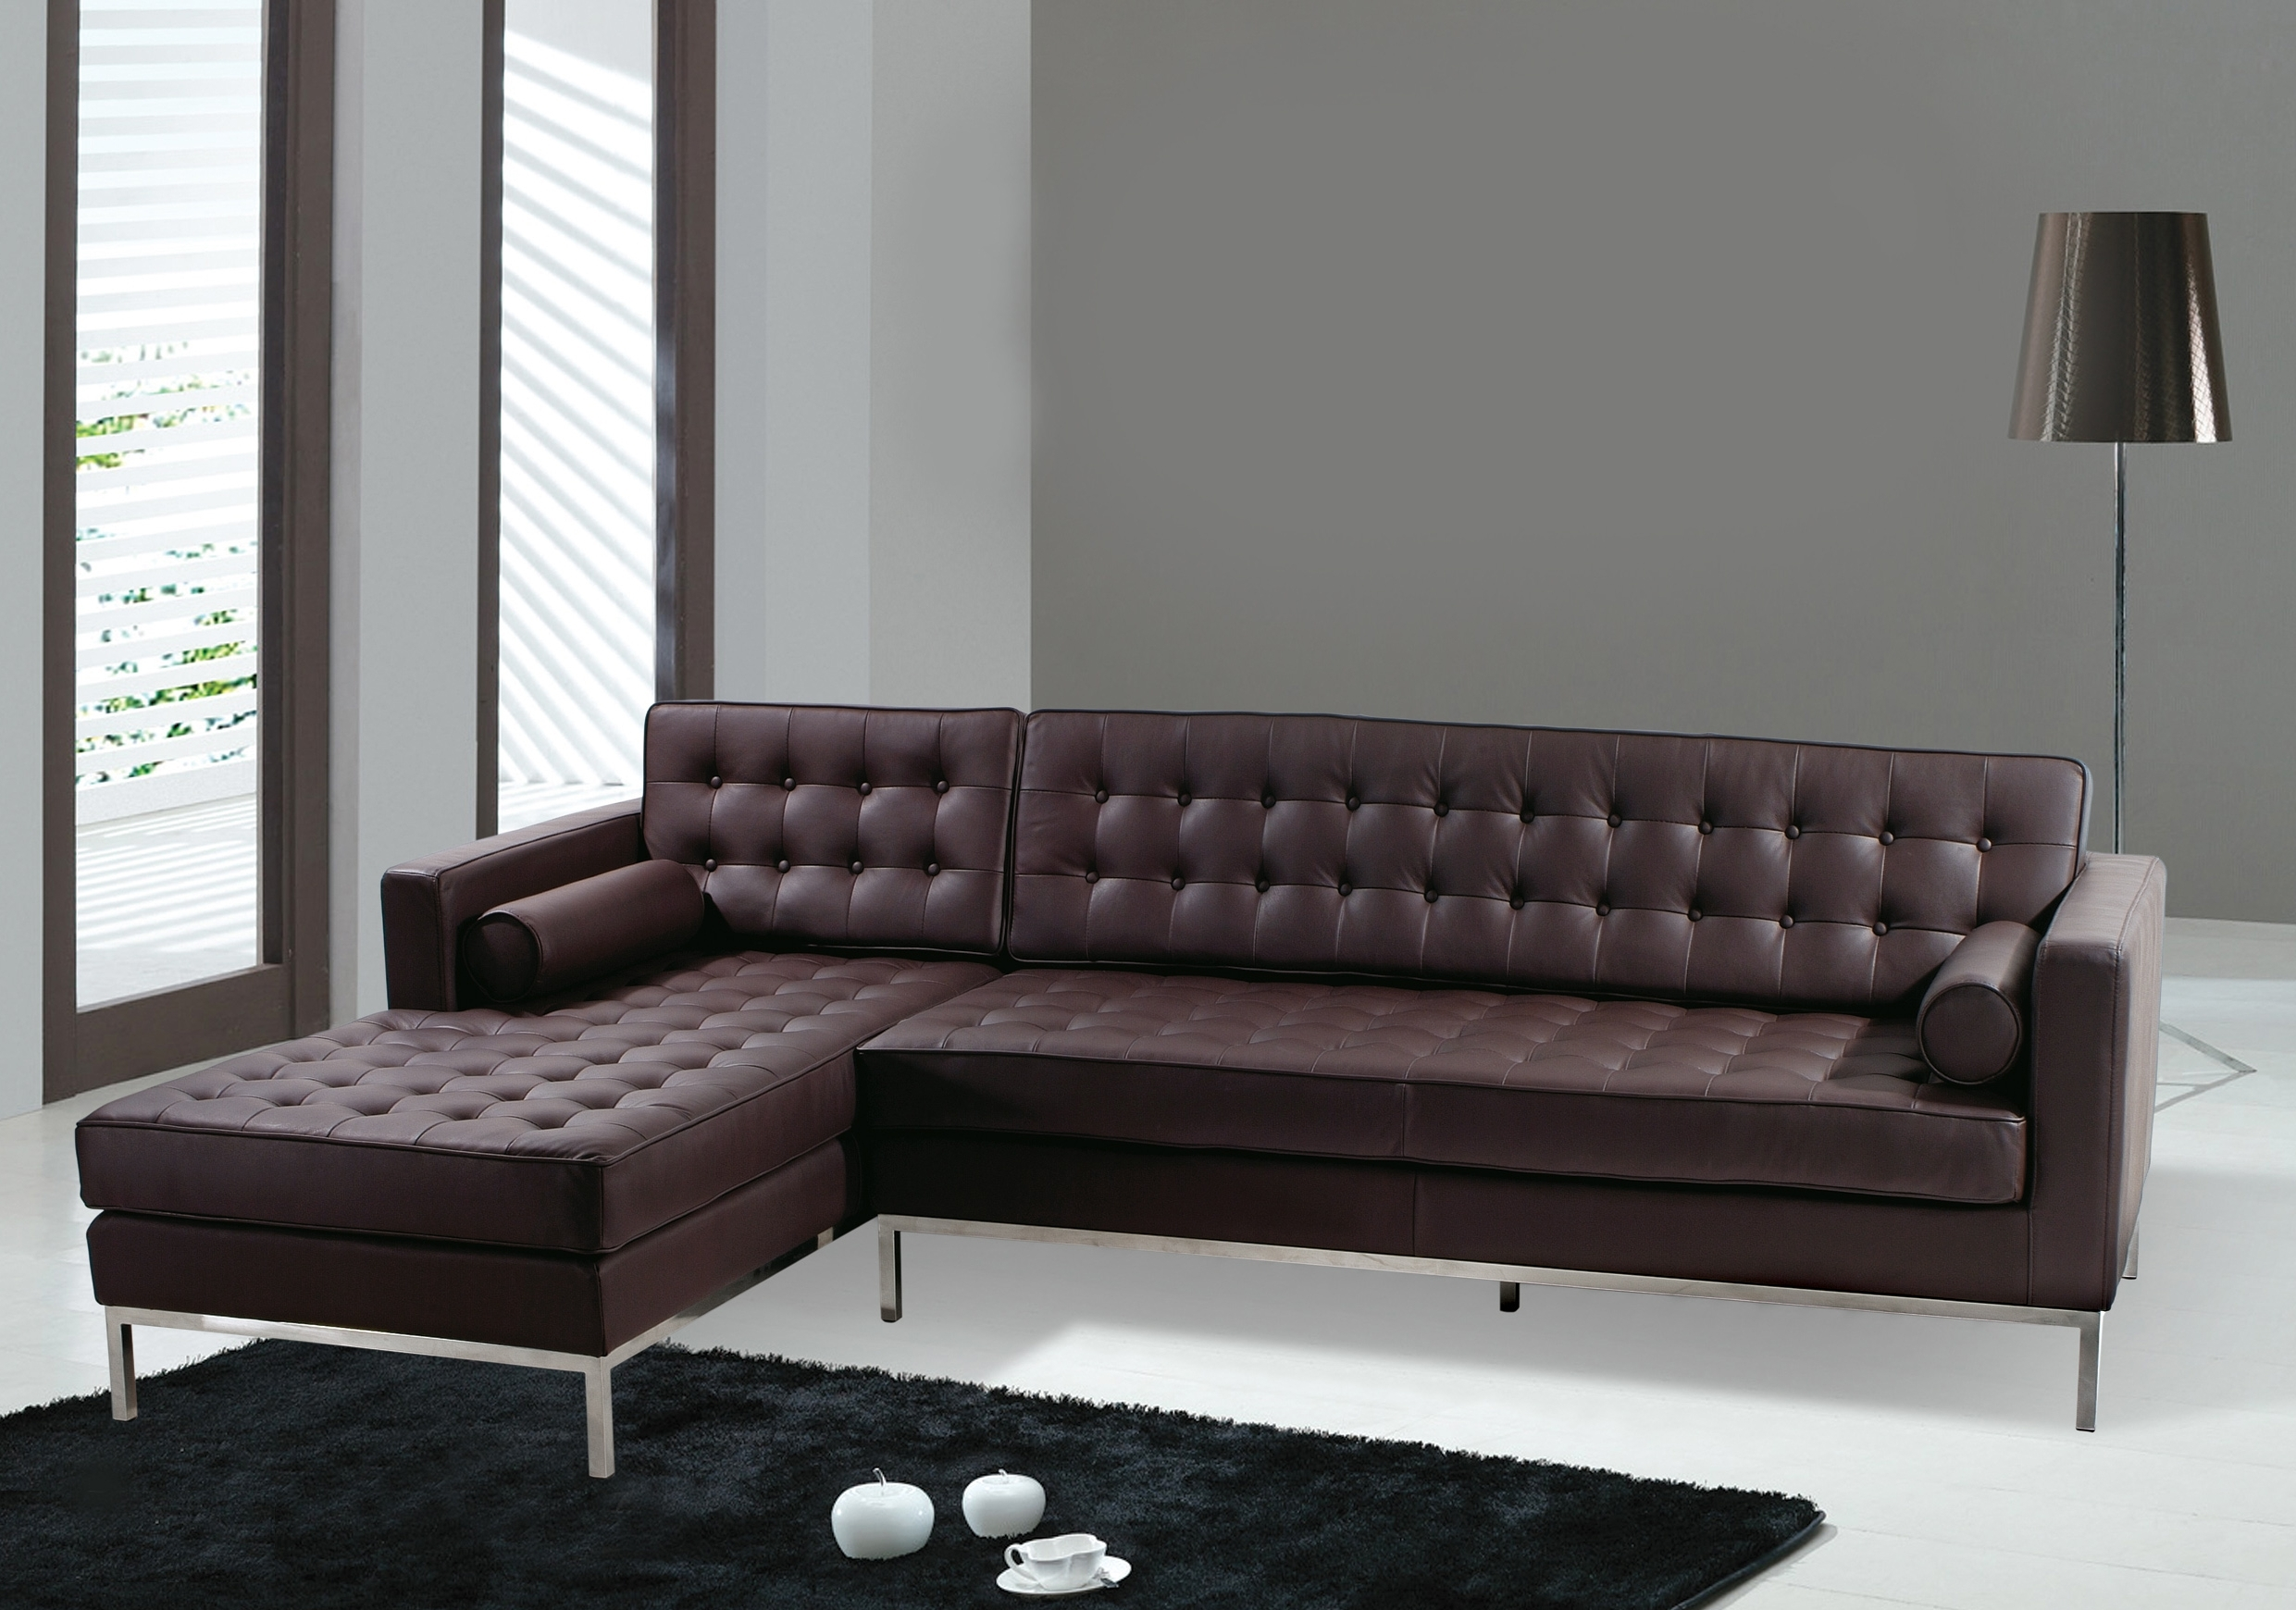 Dallas Sectional Sofas Intended For Well Known Dallas Sectional Sofa – Fjellkjeden (View 14 of 15)